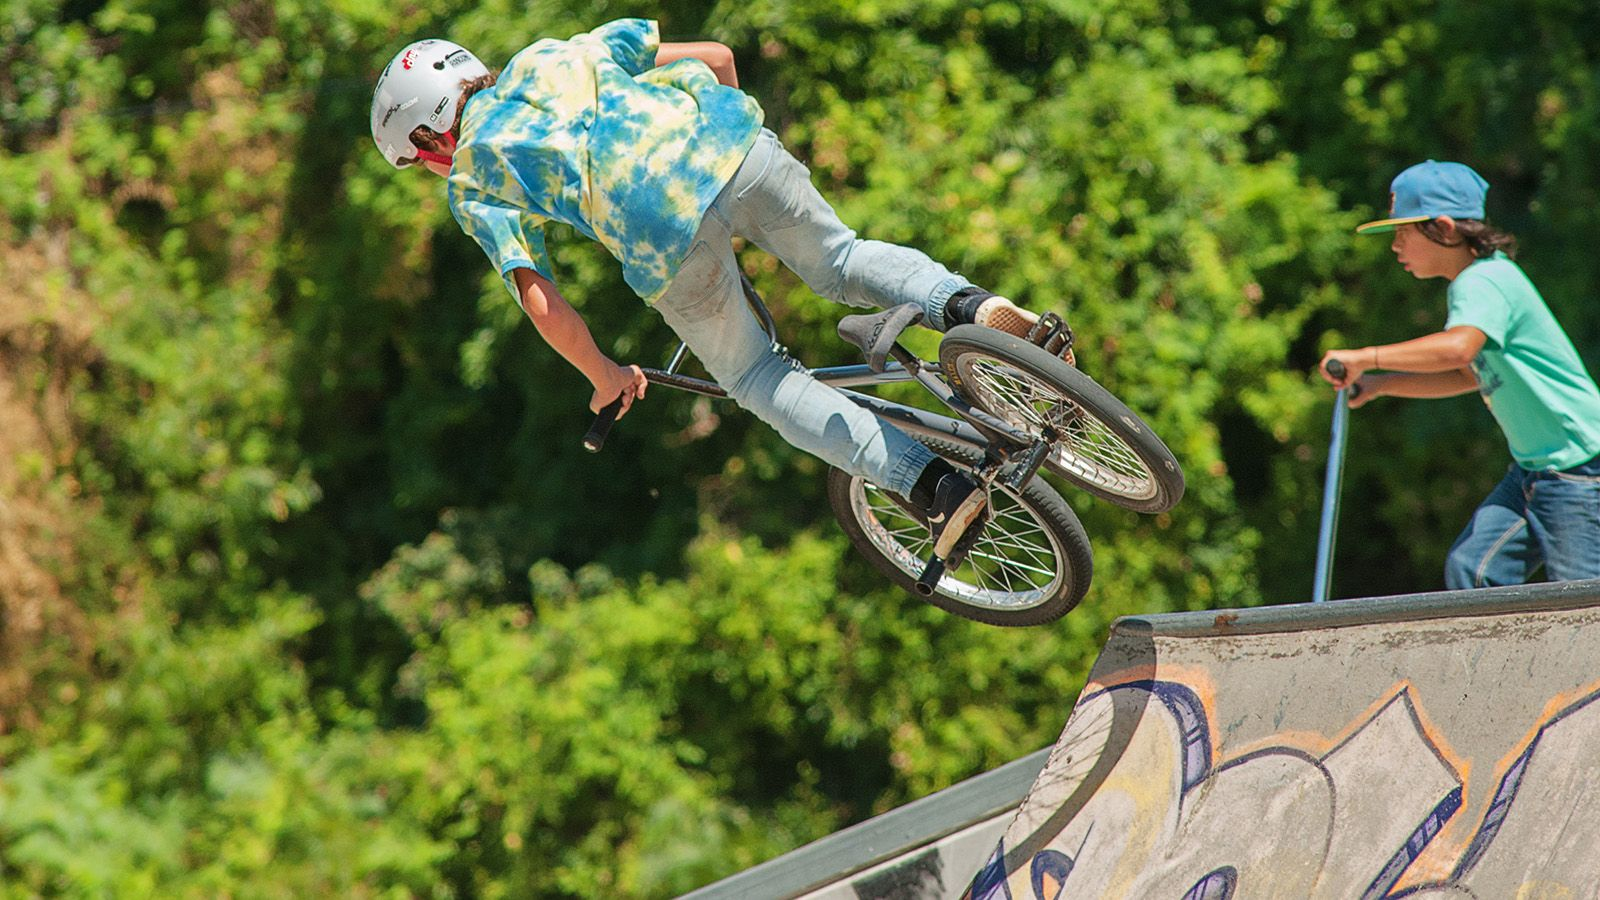 A young man riding a BMX bike in mid-air at a skate park banner image